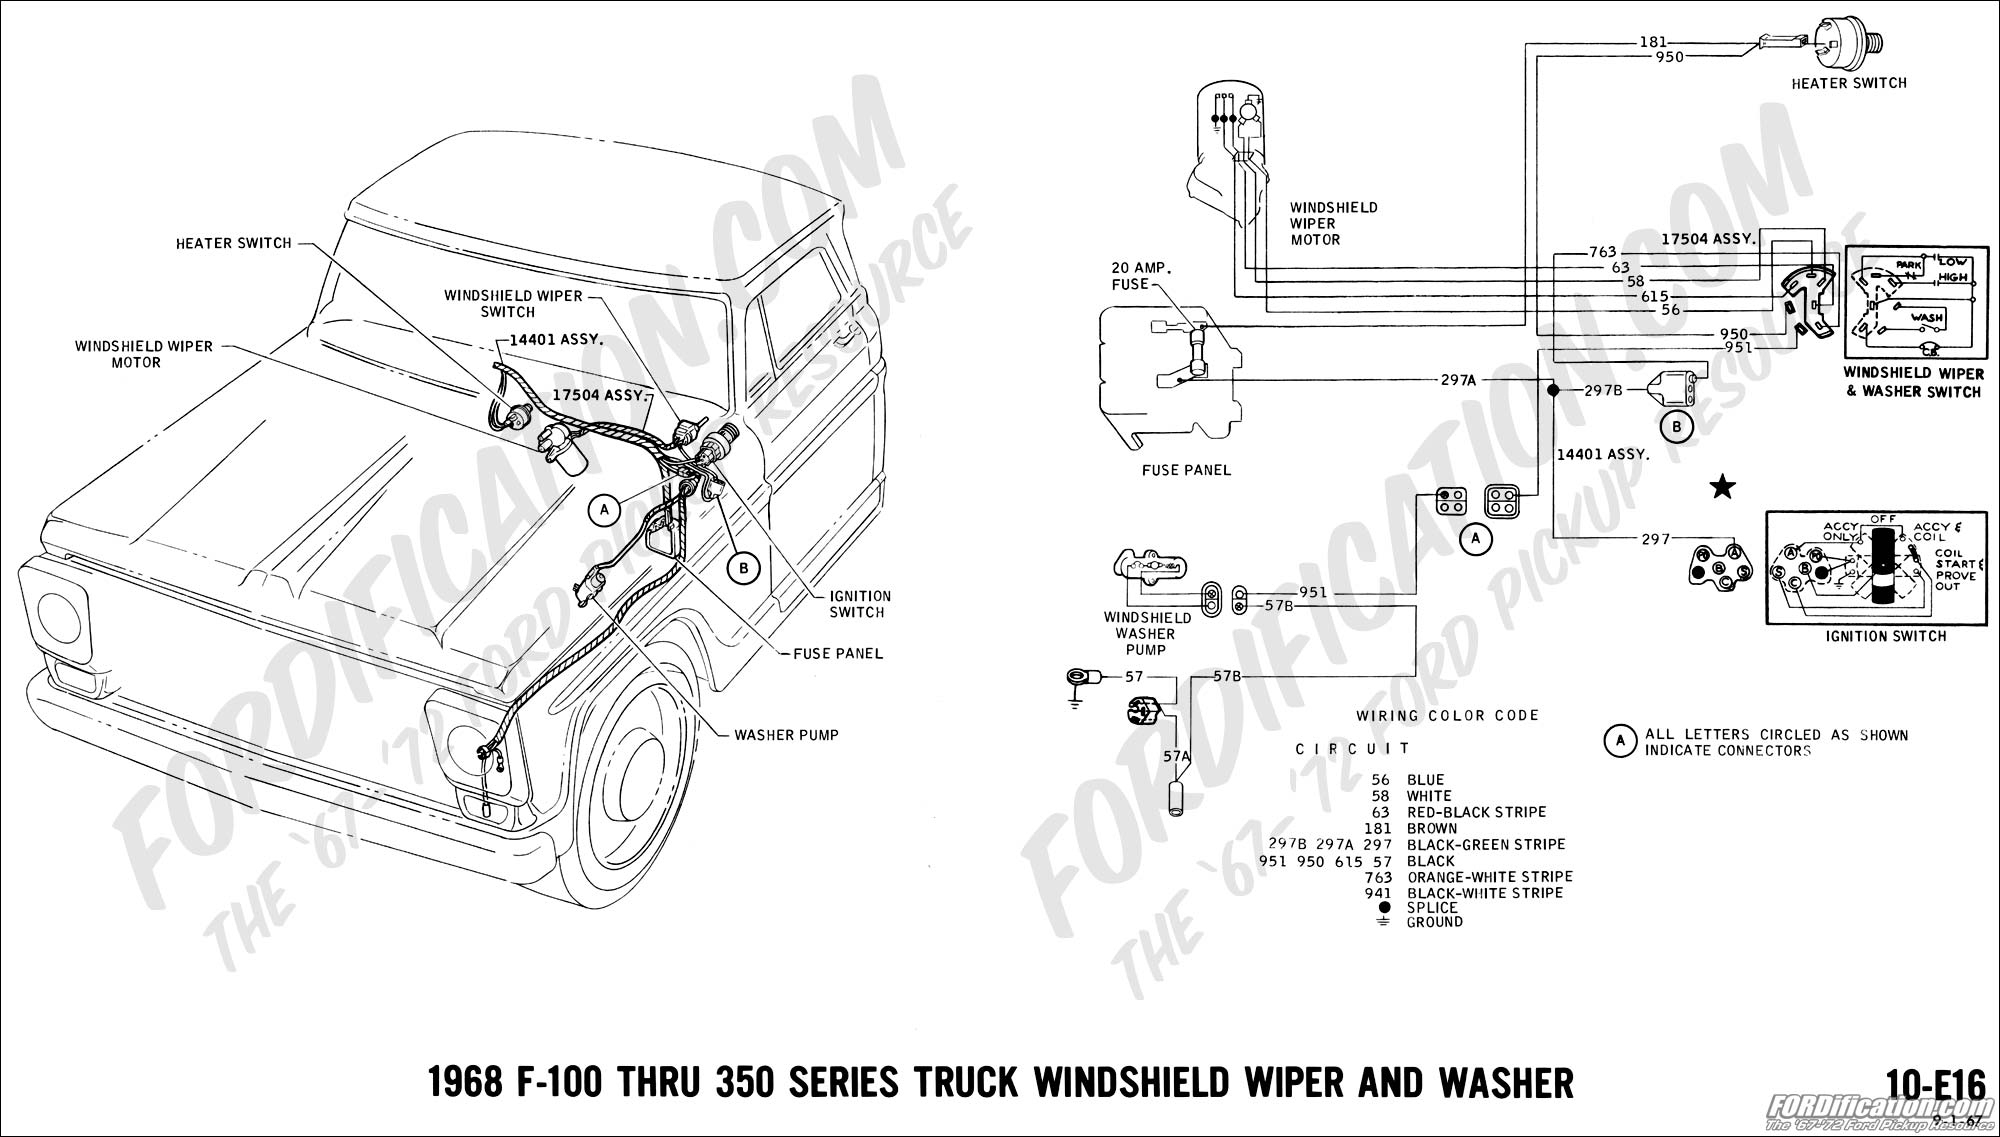 2013 Ford F250 Trailer Plug Wiring Diagram | Trailer ...